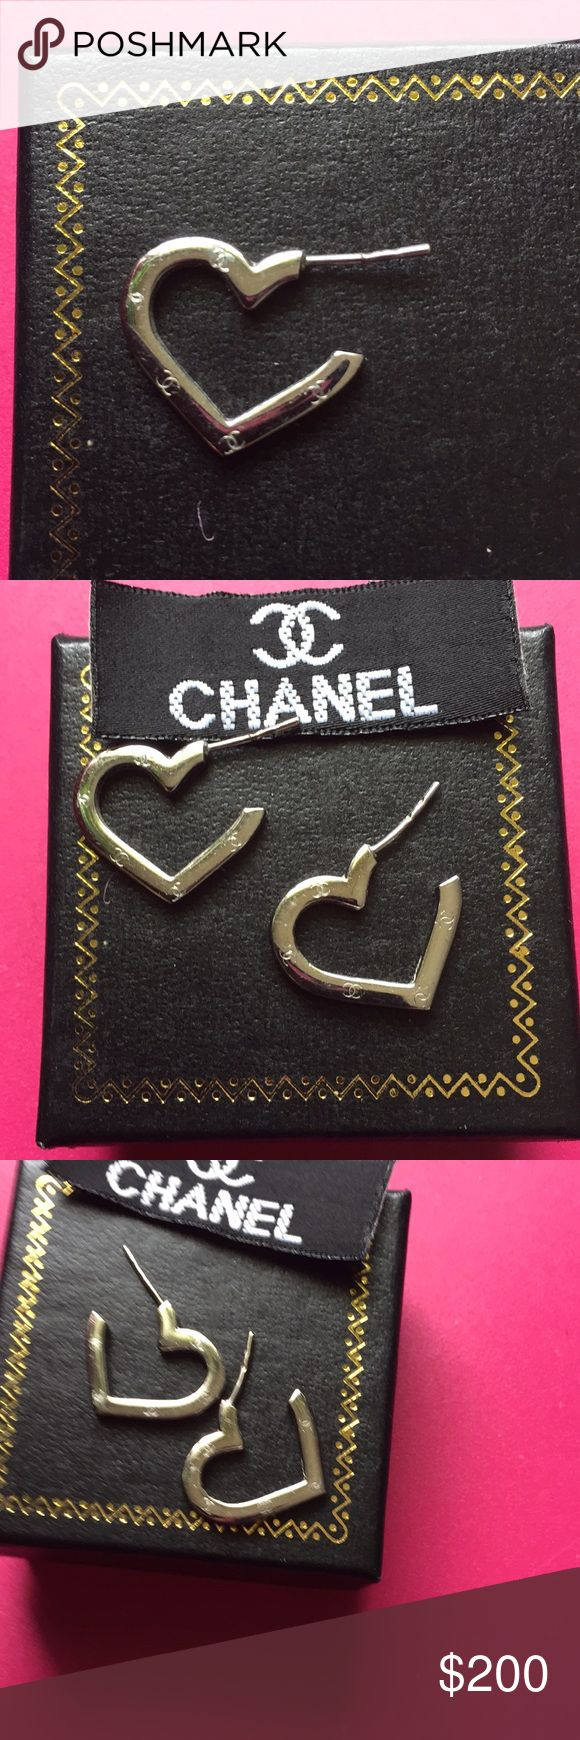 Channel earring Channel earring do not have Original back's but will send backs with them these a priced low cuz no box TV higher  also were a gift looking into Authenticity I did see them on Tradesy as authentic if anyone out there know that would b great an would not change the price but priced to sell CHANEL Jewelry Earrings